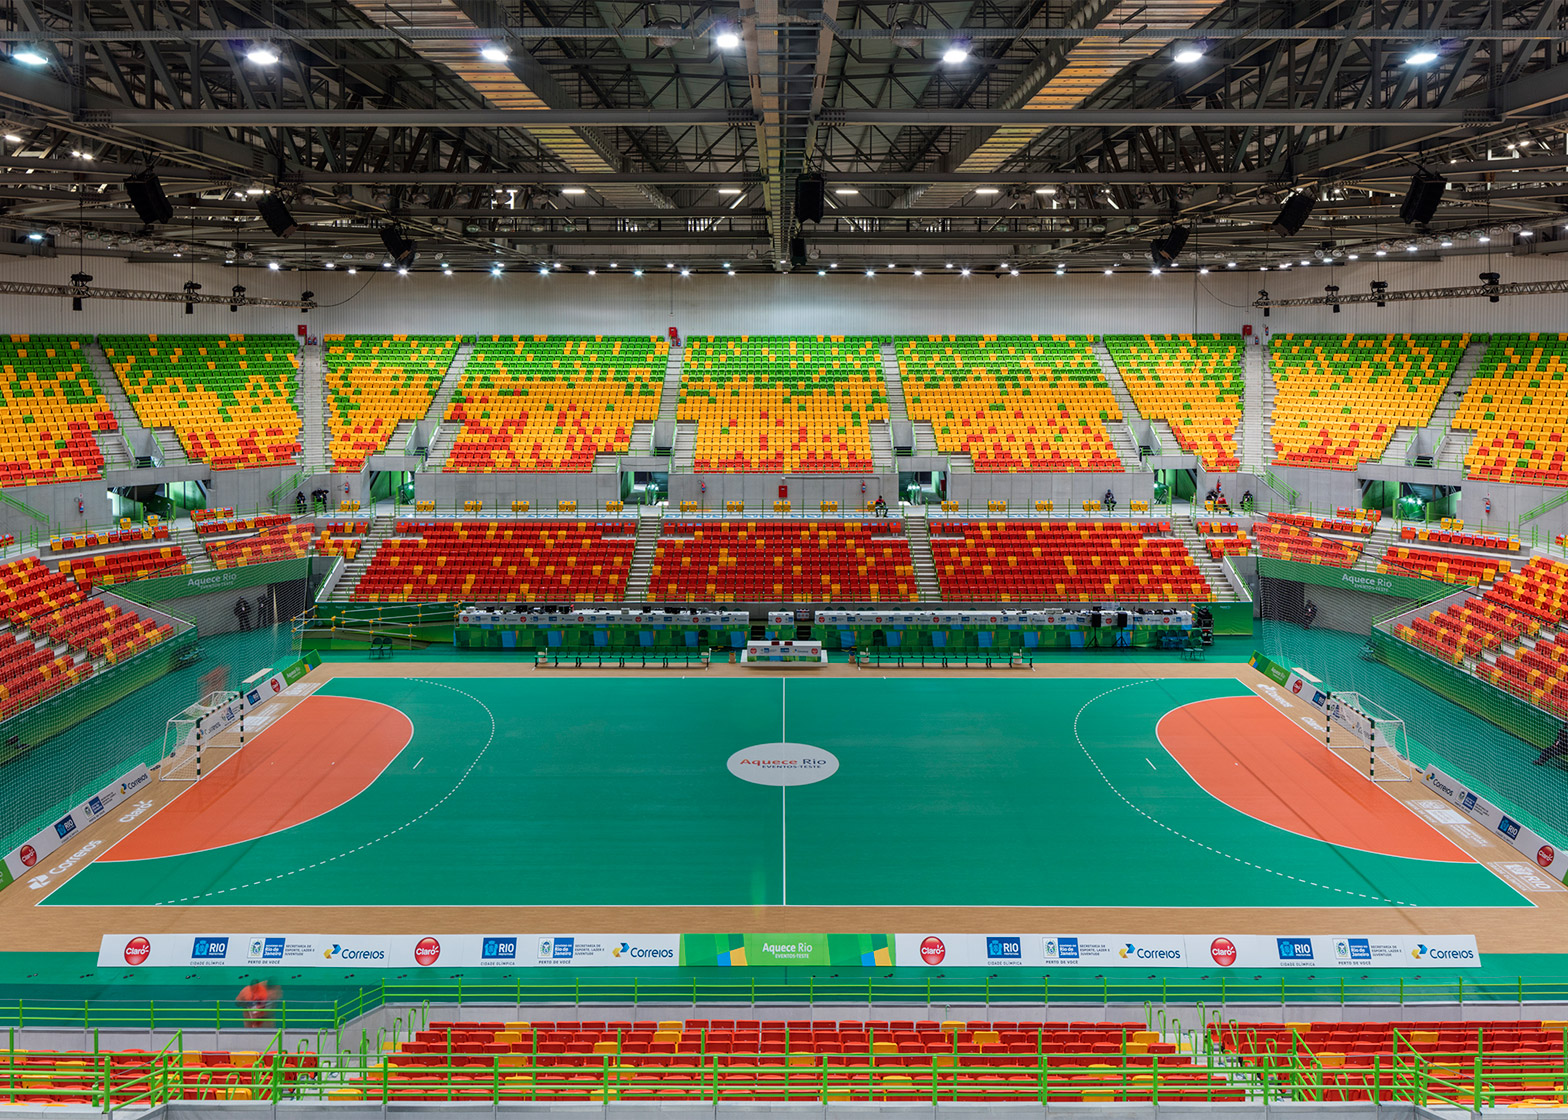 Handball Arena, Barra Olympic Park, by Lopes, Santos & Ferreira Gomes and AndArchitects